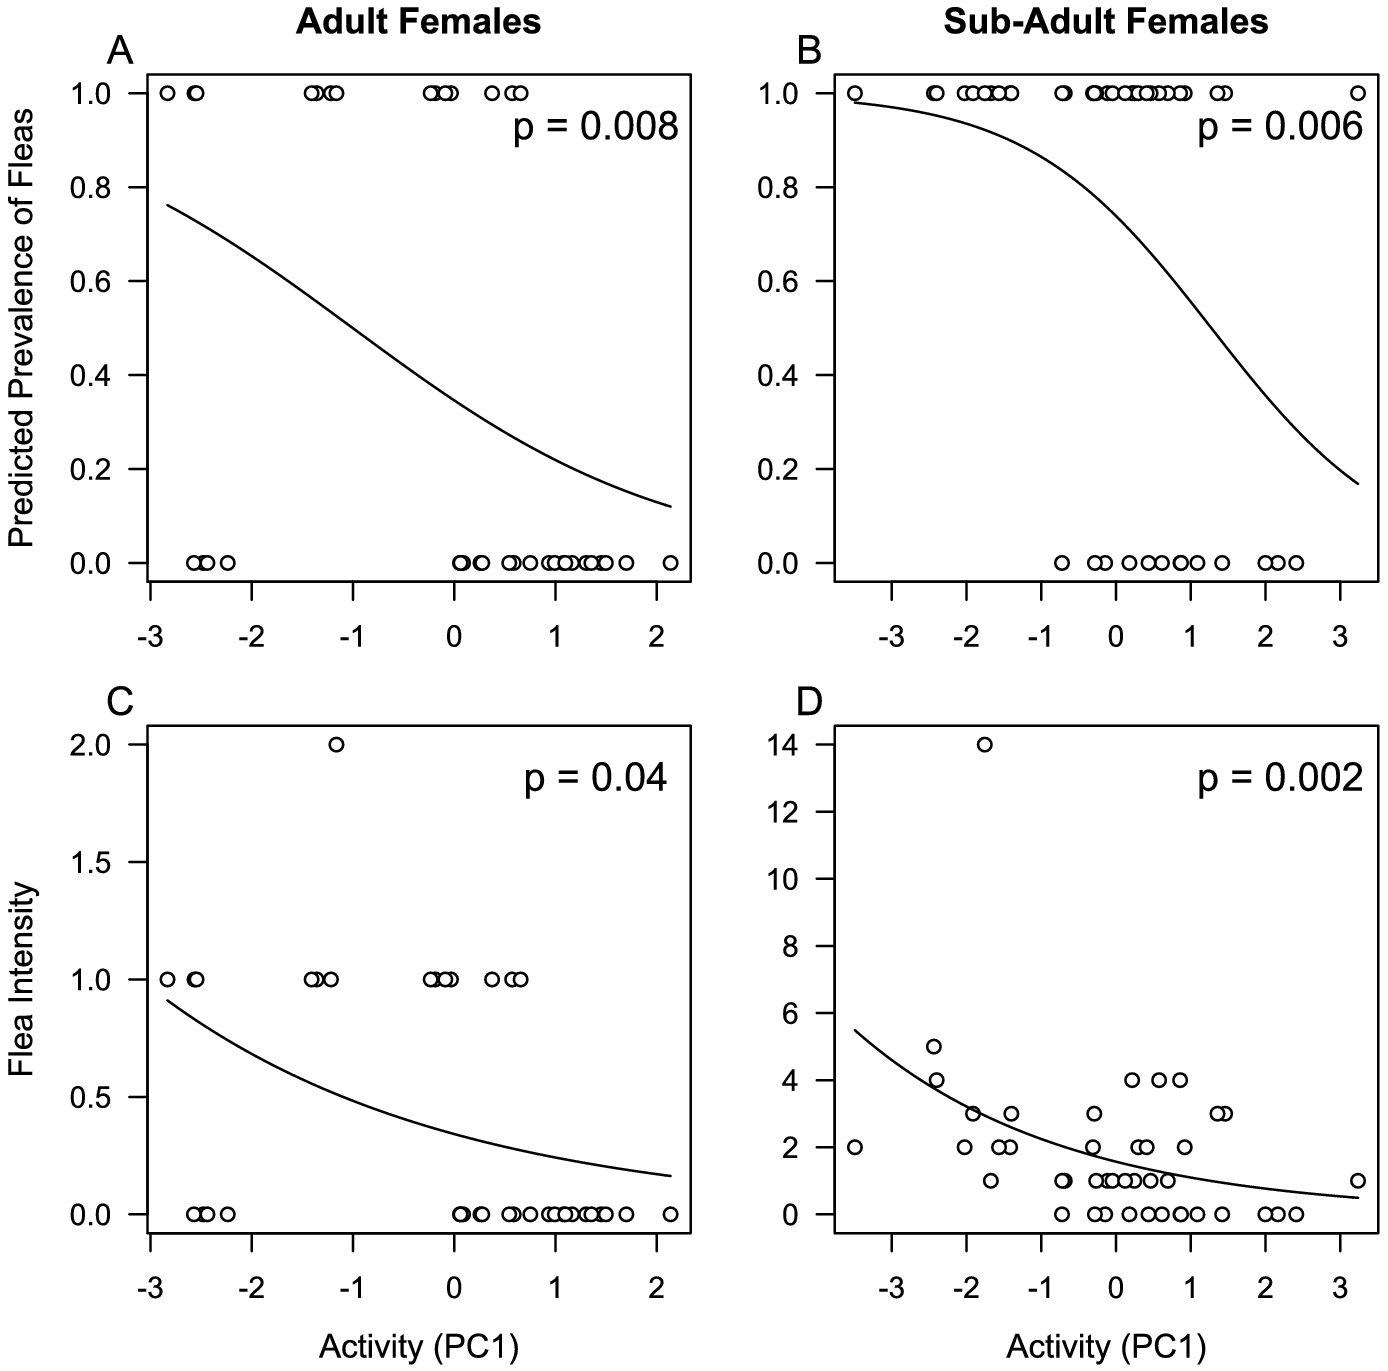 Host behaviour, age and sex correlate with ectoparasite prevalence